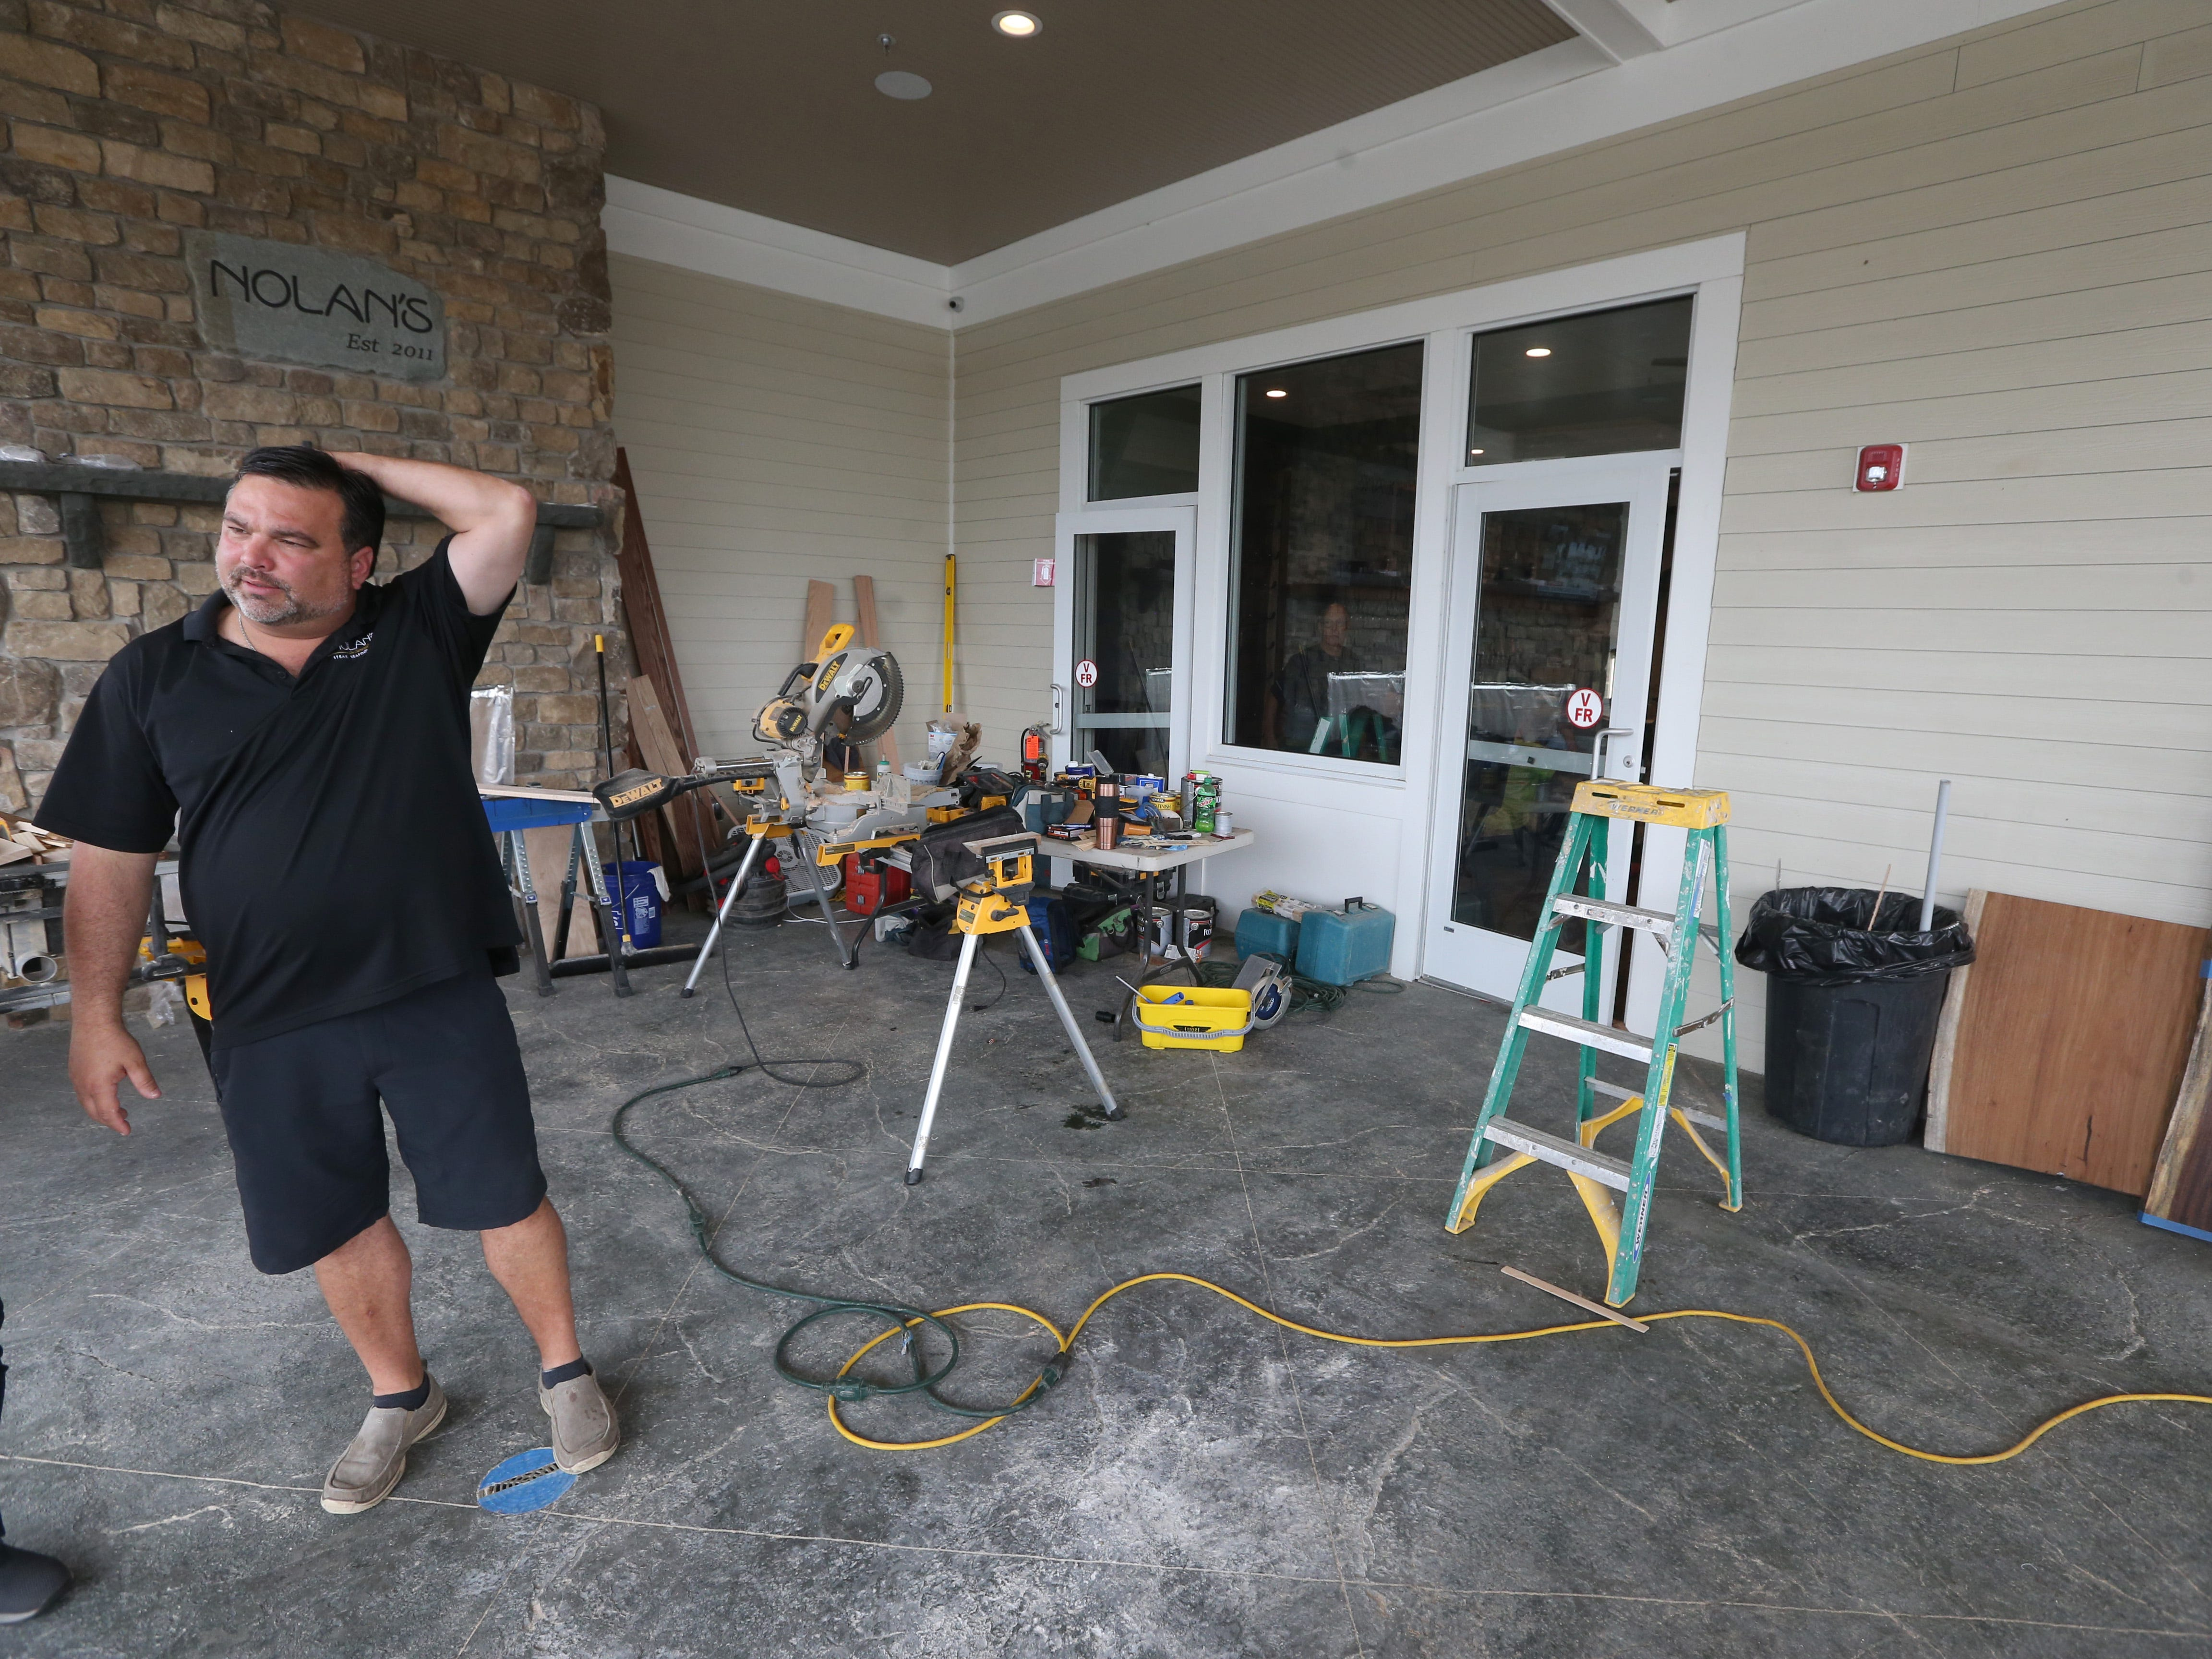 Nick Violas on the outside deck area at Nolan's in Canandaigua.  The deck is being built exactly where the old deck was before the fire on July 13, 2017.